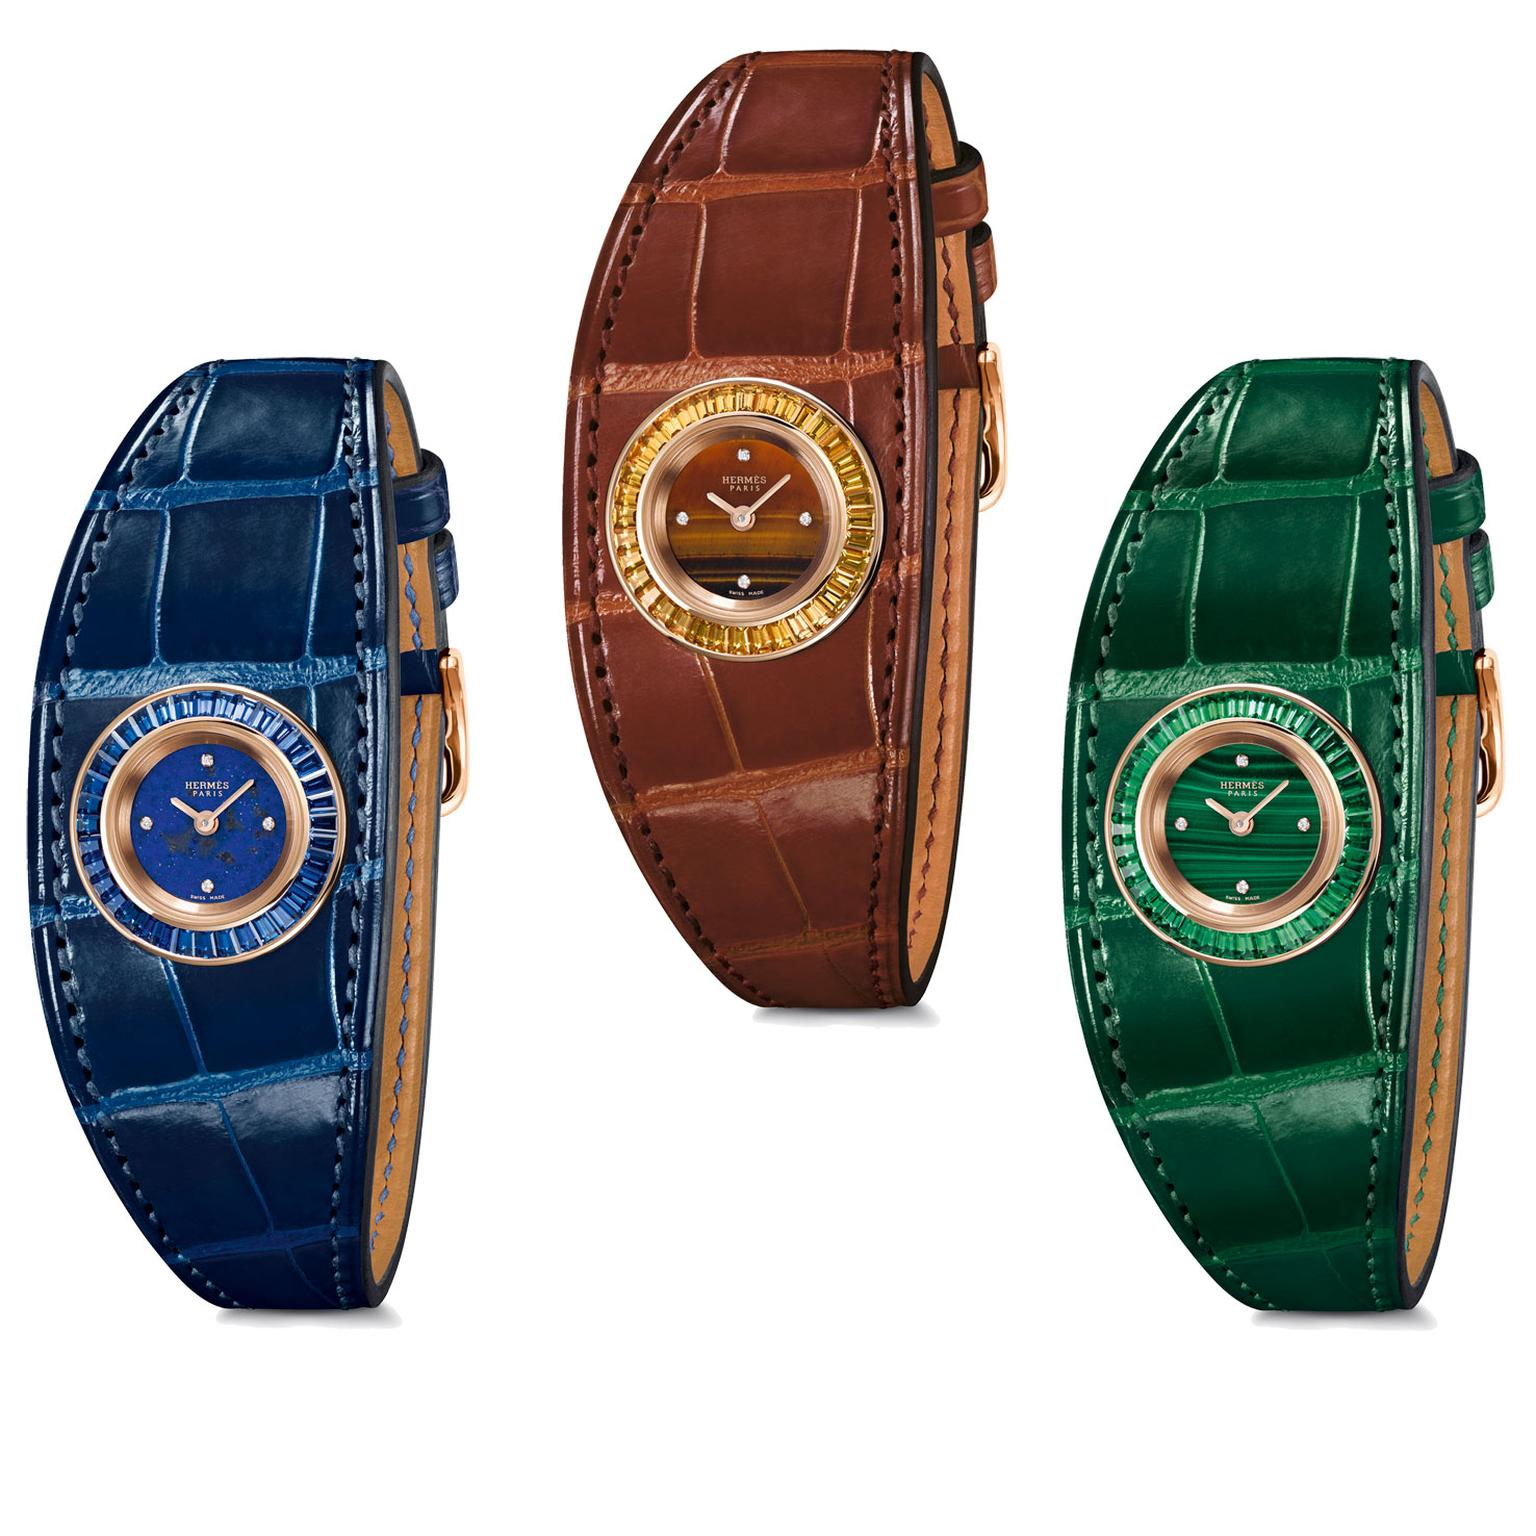 Hermes Faubourg Manchette Joaillerie watches